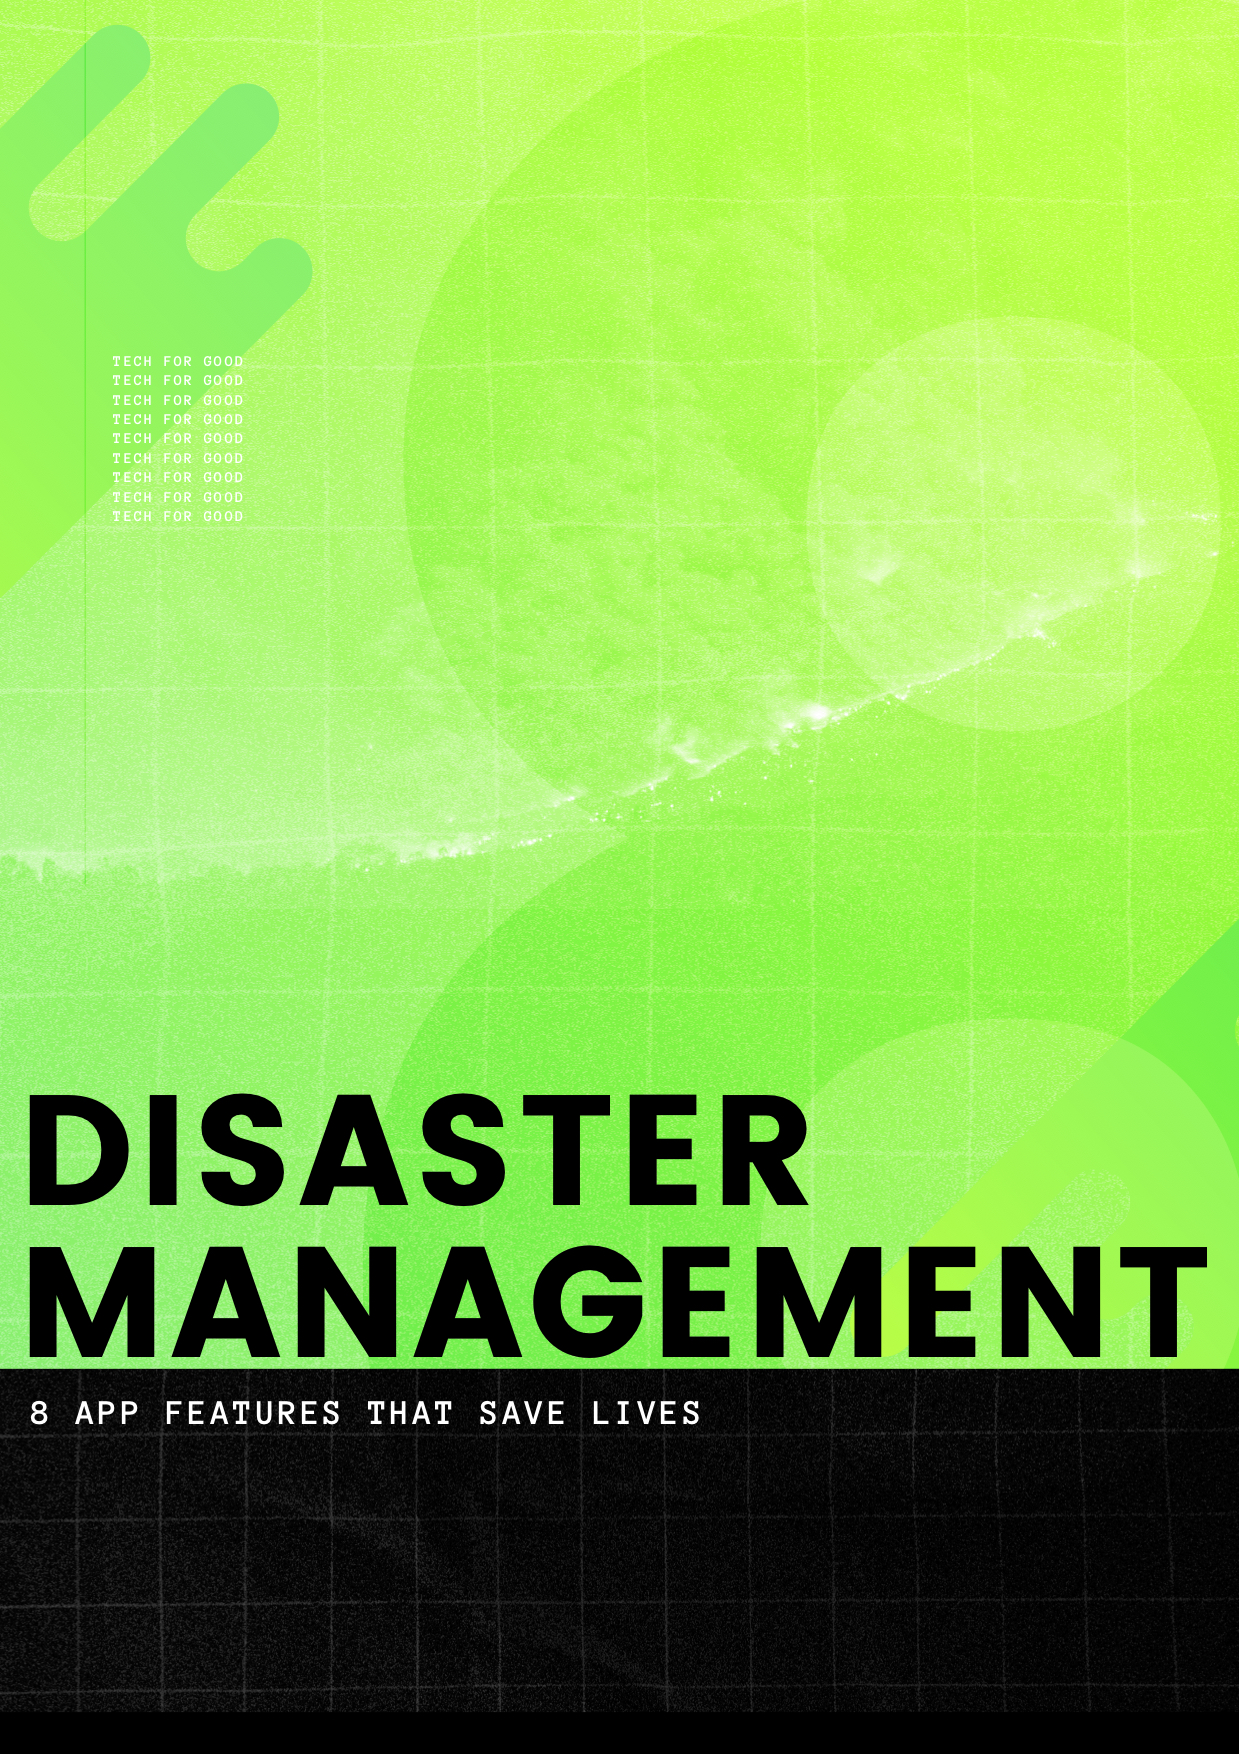 Disaster Management App Features